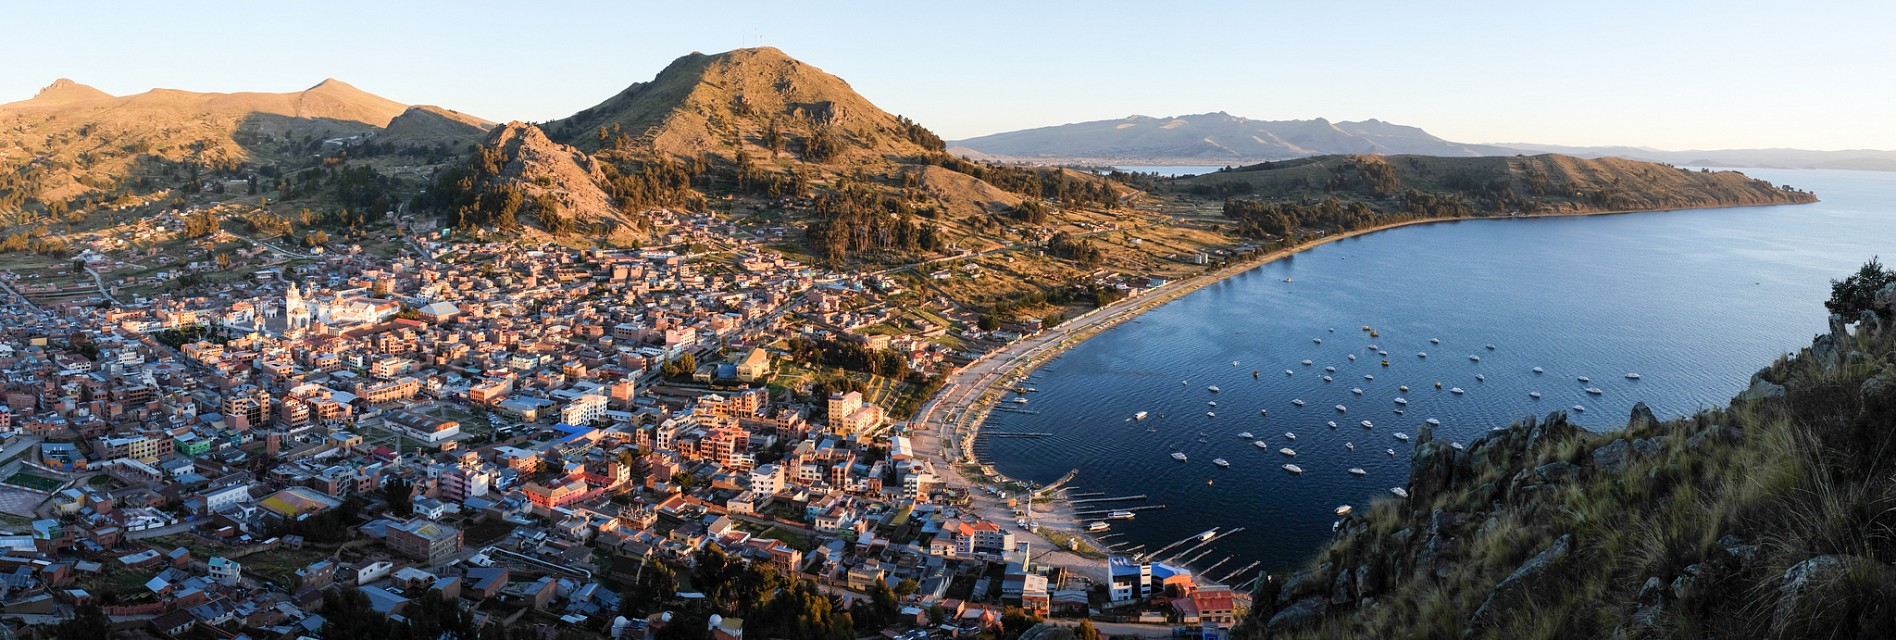 The Real Copacabana - Lake Titicaca